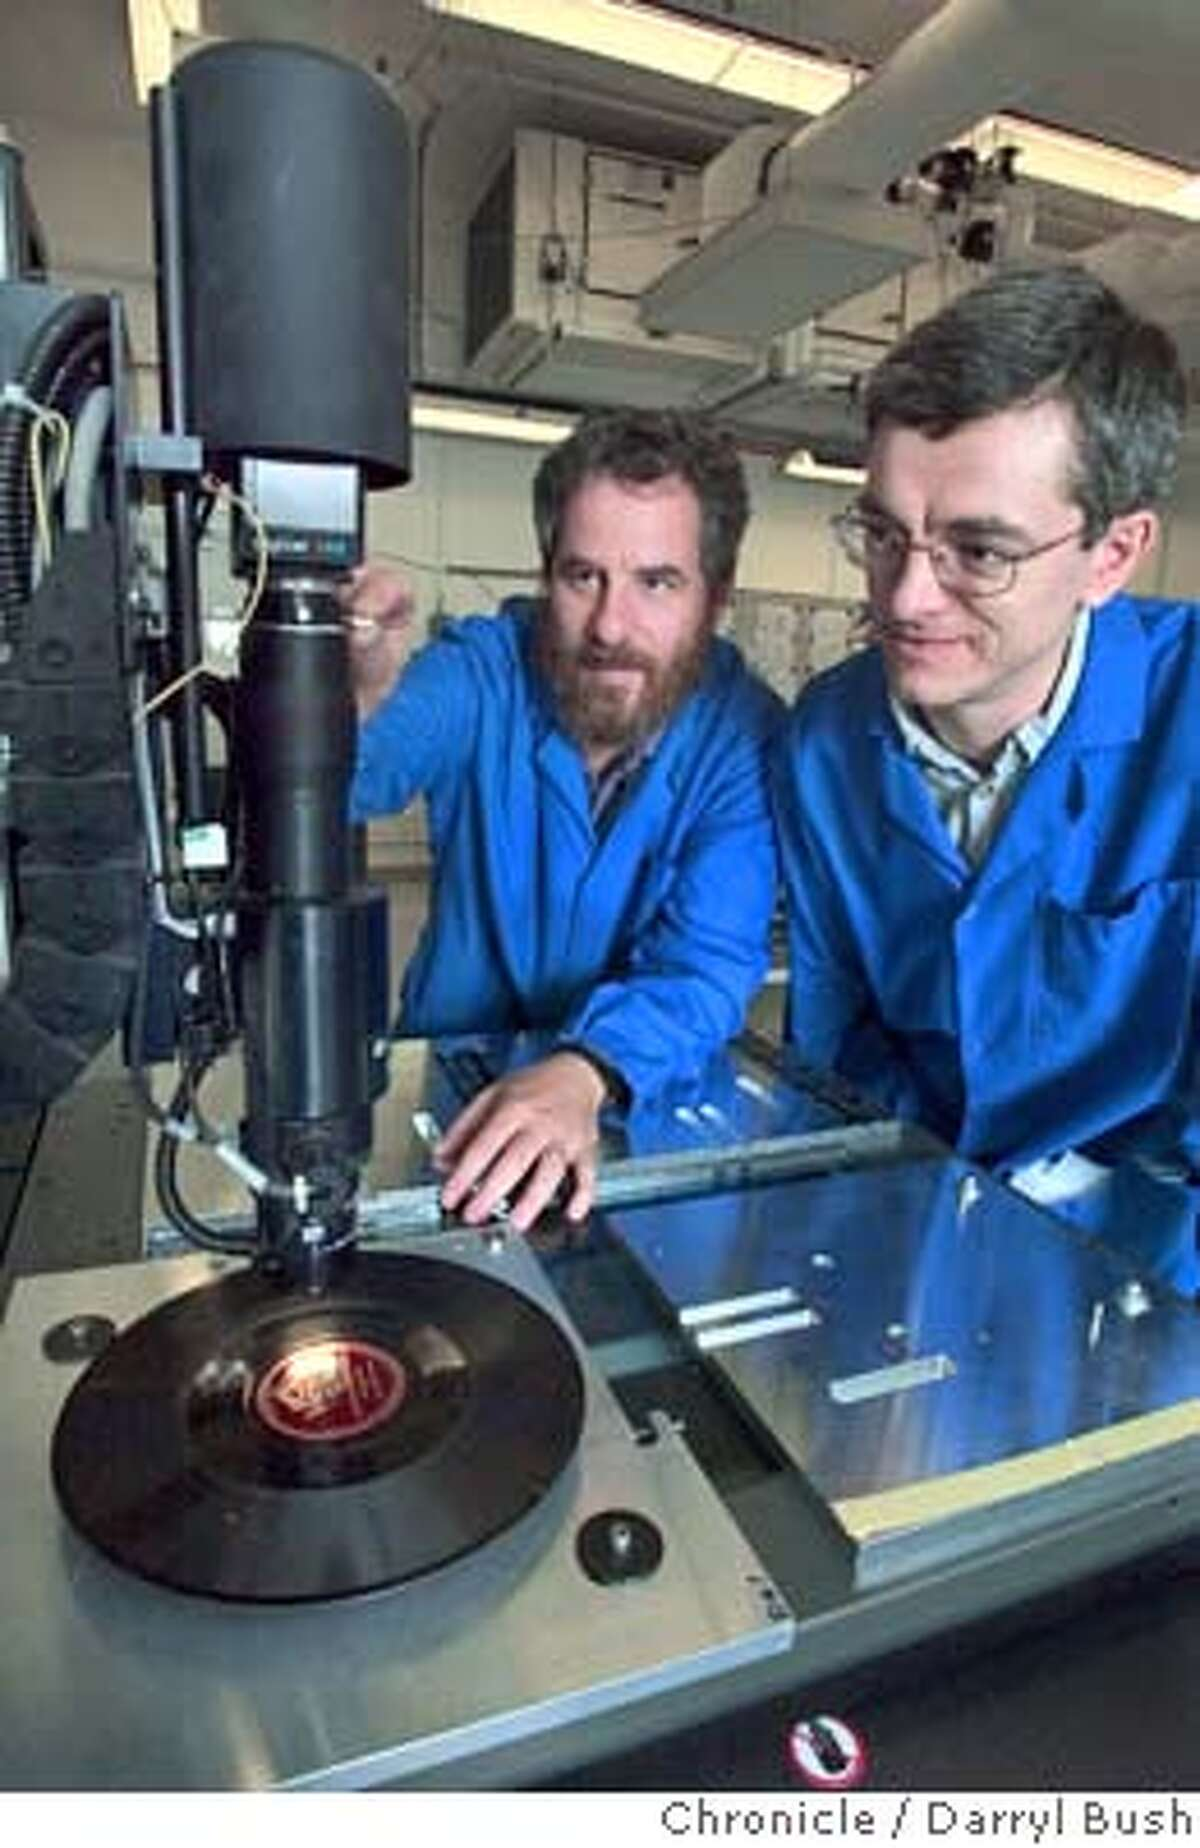 Scientists Carl Haber, left, and Vitaliy Fadeyev, right, make adjustments on setting up an early 78rpm shellac disk pressed in 1932 of an early Enrico Caruso recording, underneath the Smartscope digital microscope, inside a clean room at Lawrence Berkeley National Laboratory where they work on two new ways to recover sound from old recordings on cylinders and disks. 7/9/04 in Berkeley Darryl Bush / The Chronicle